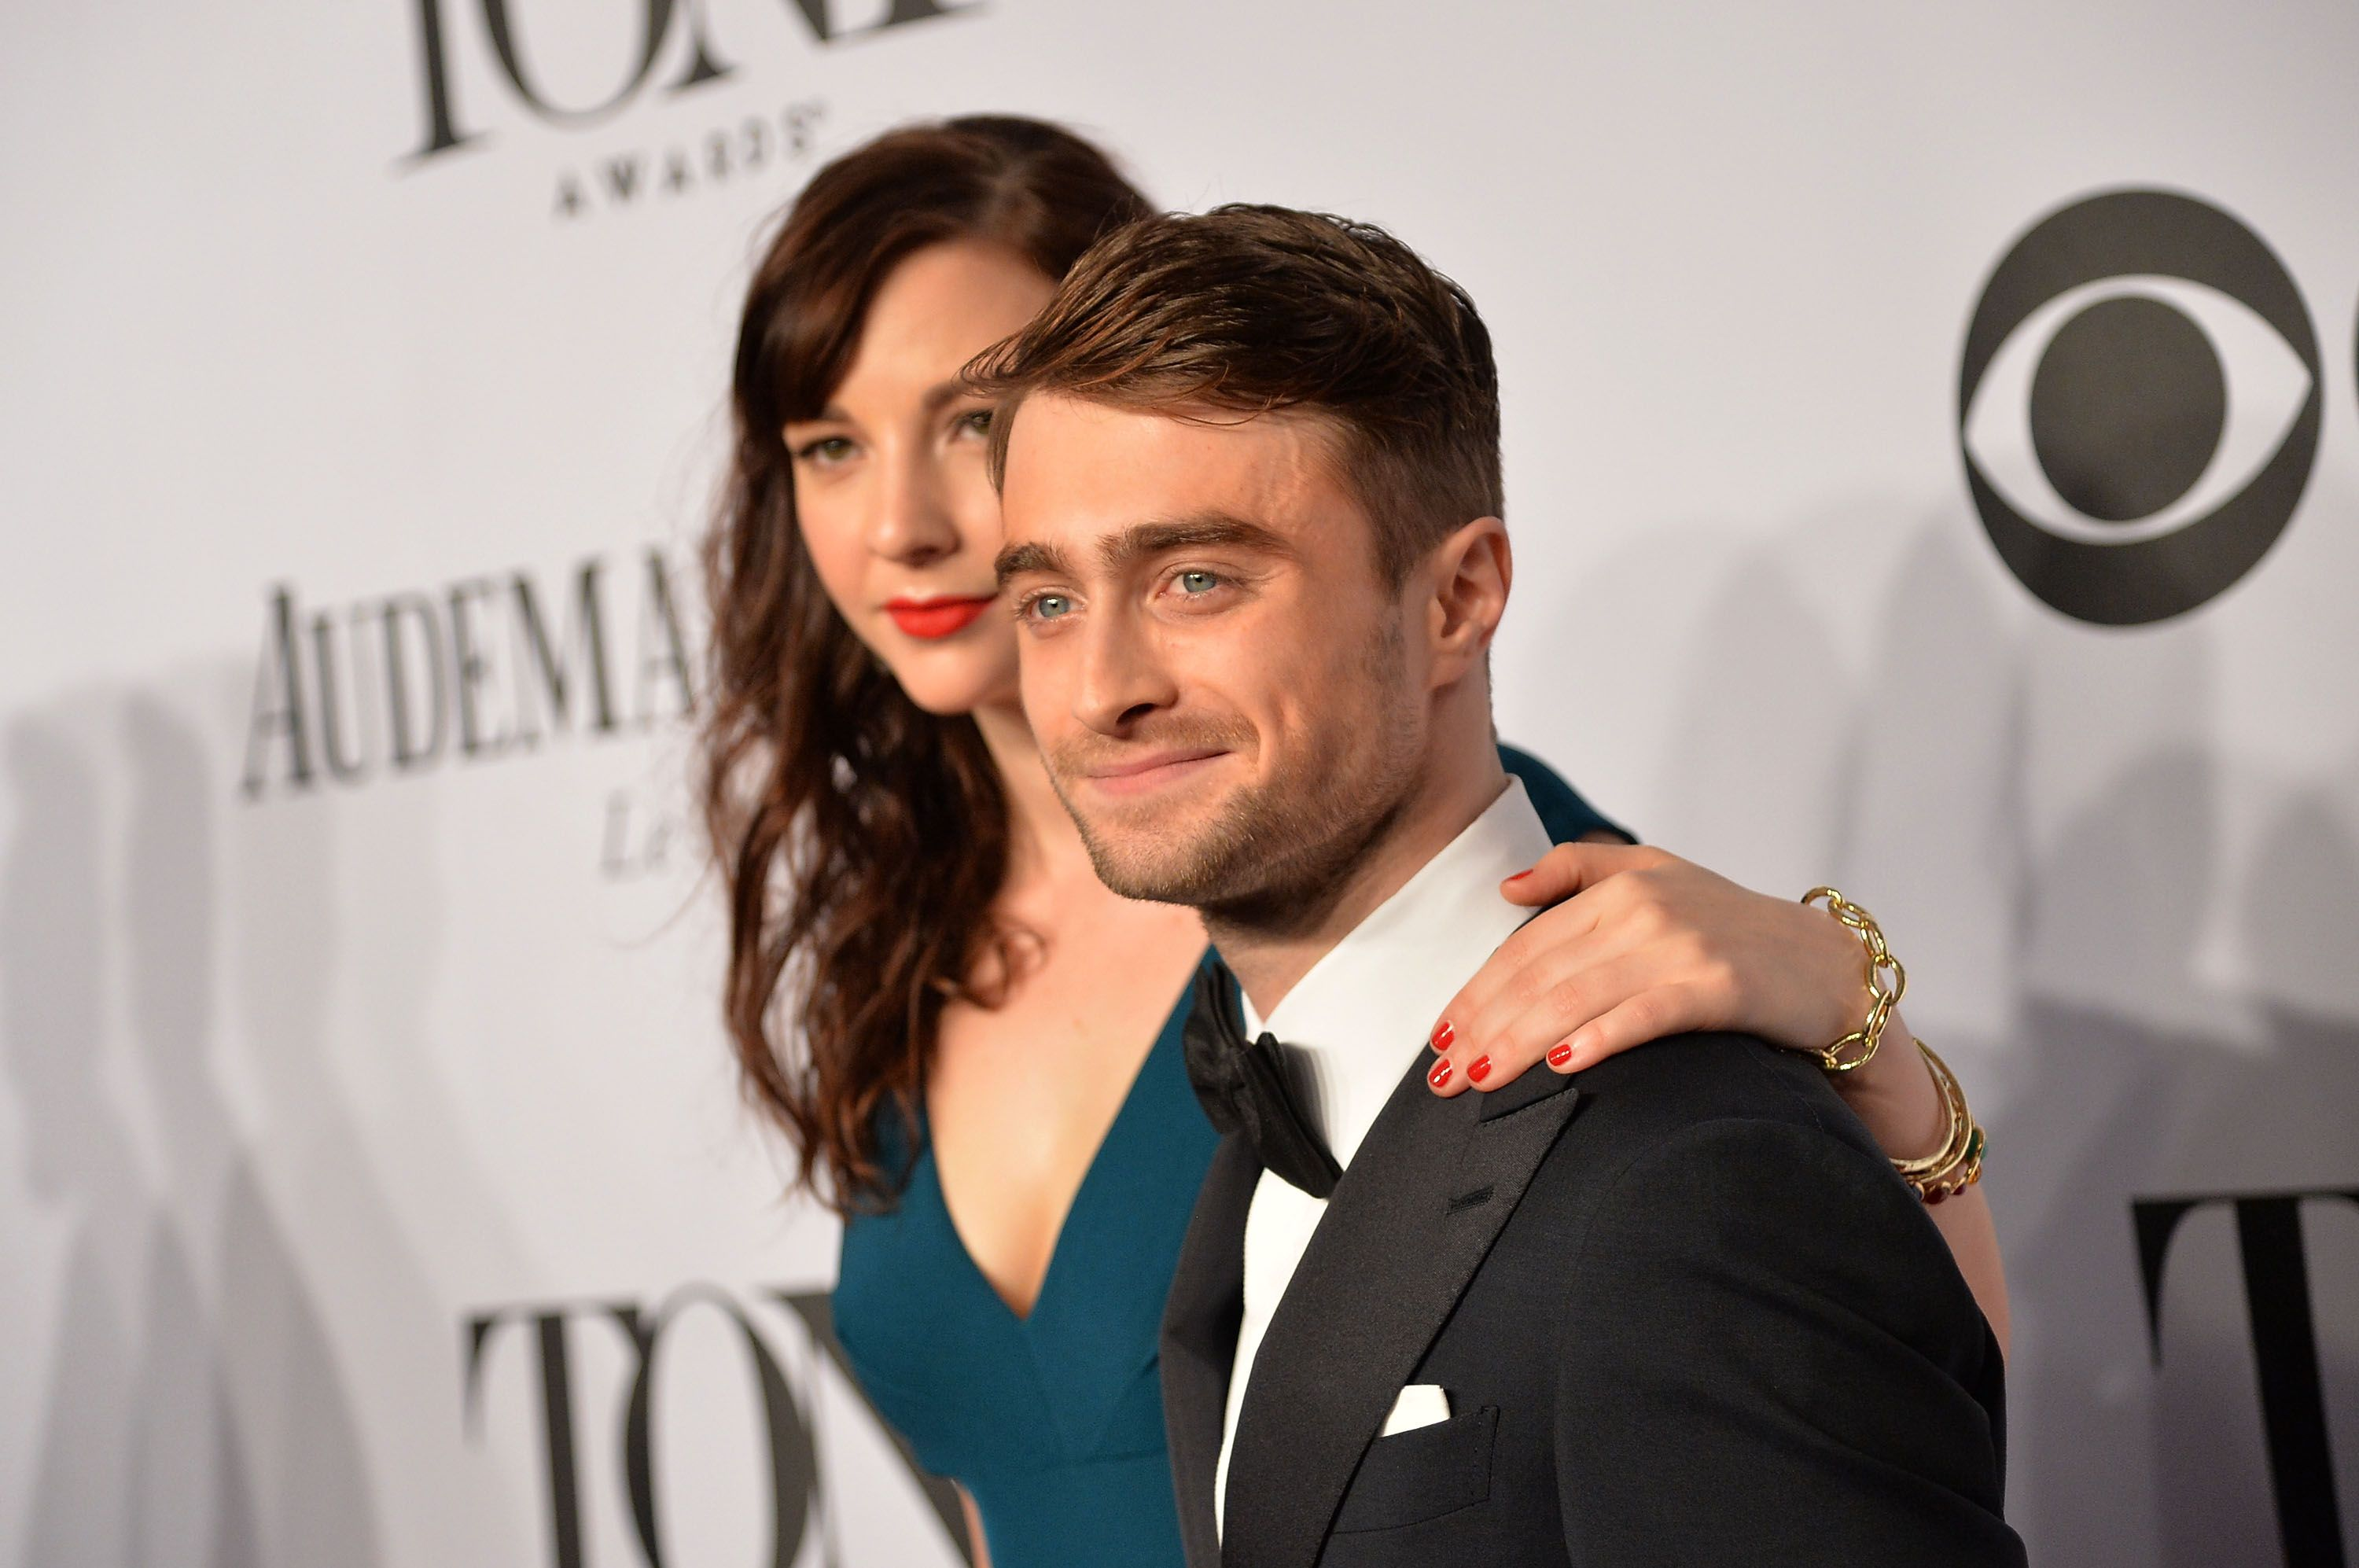 Daniel Radcliffe and Erin Darke at the 68th Annual Tony Awards in 2014 in New York City | Source: Getty Images